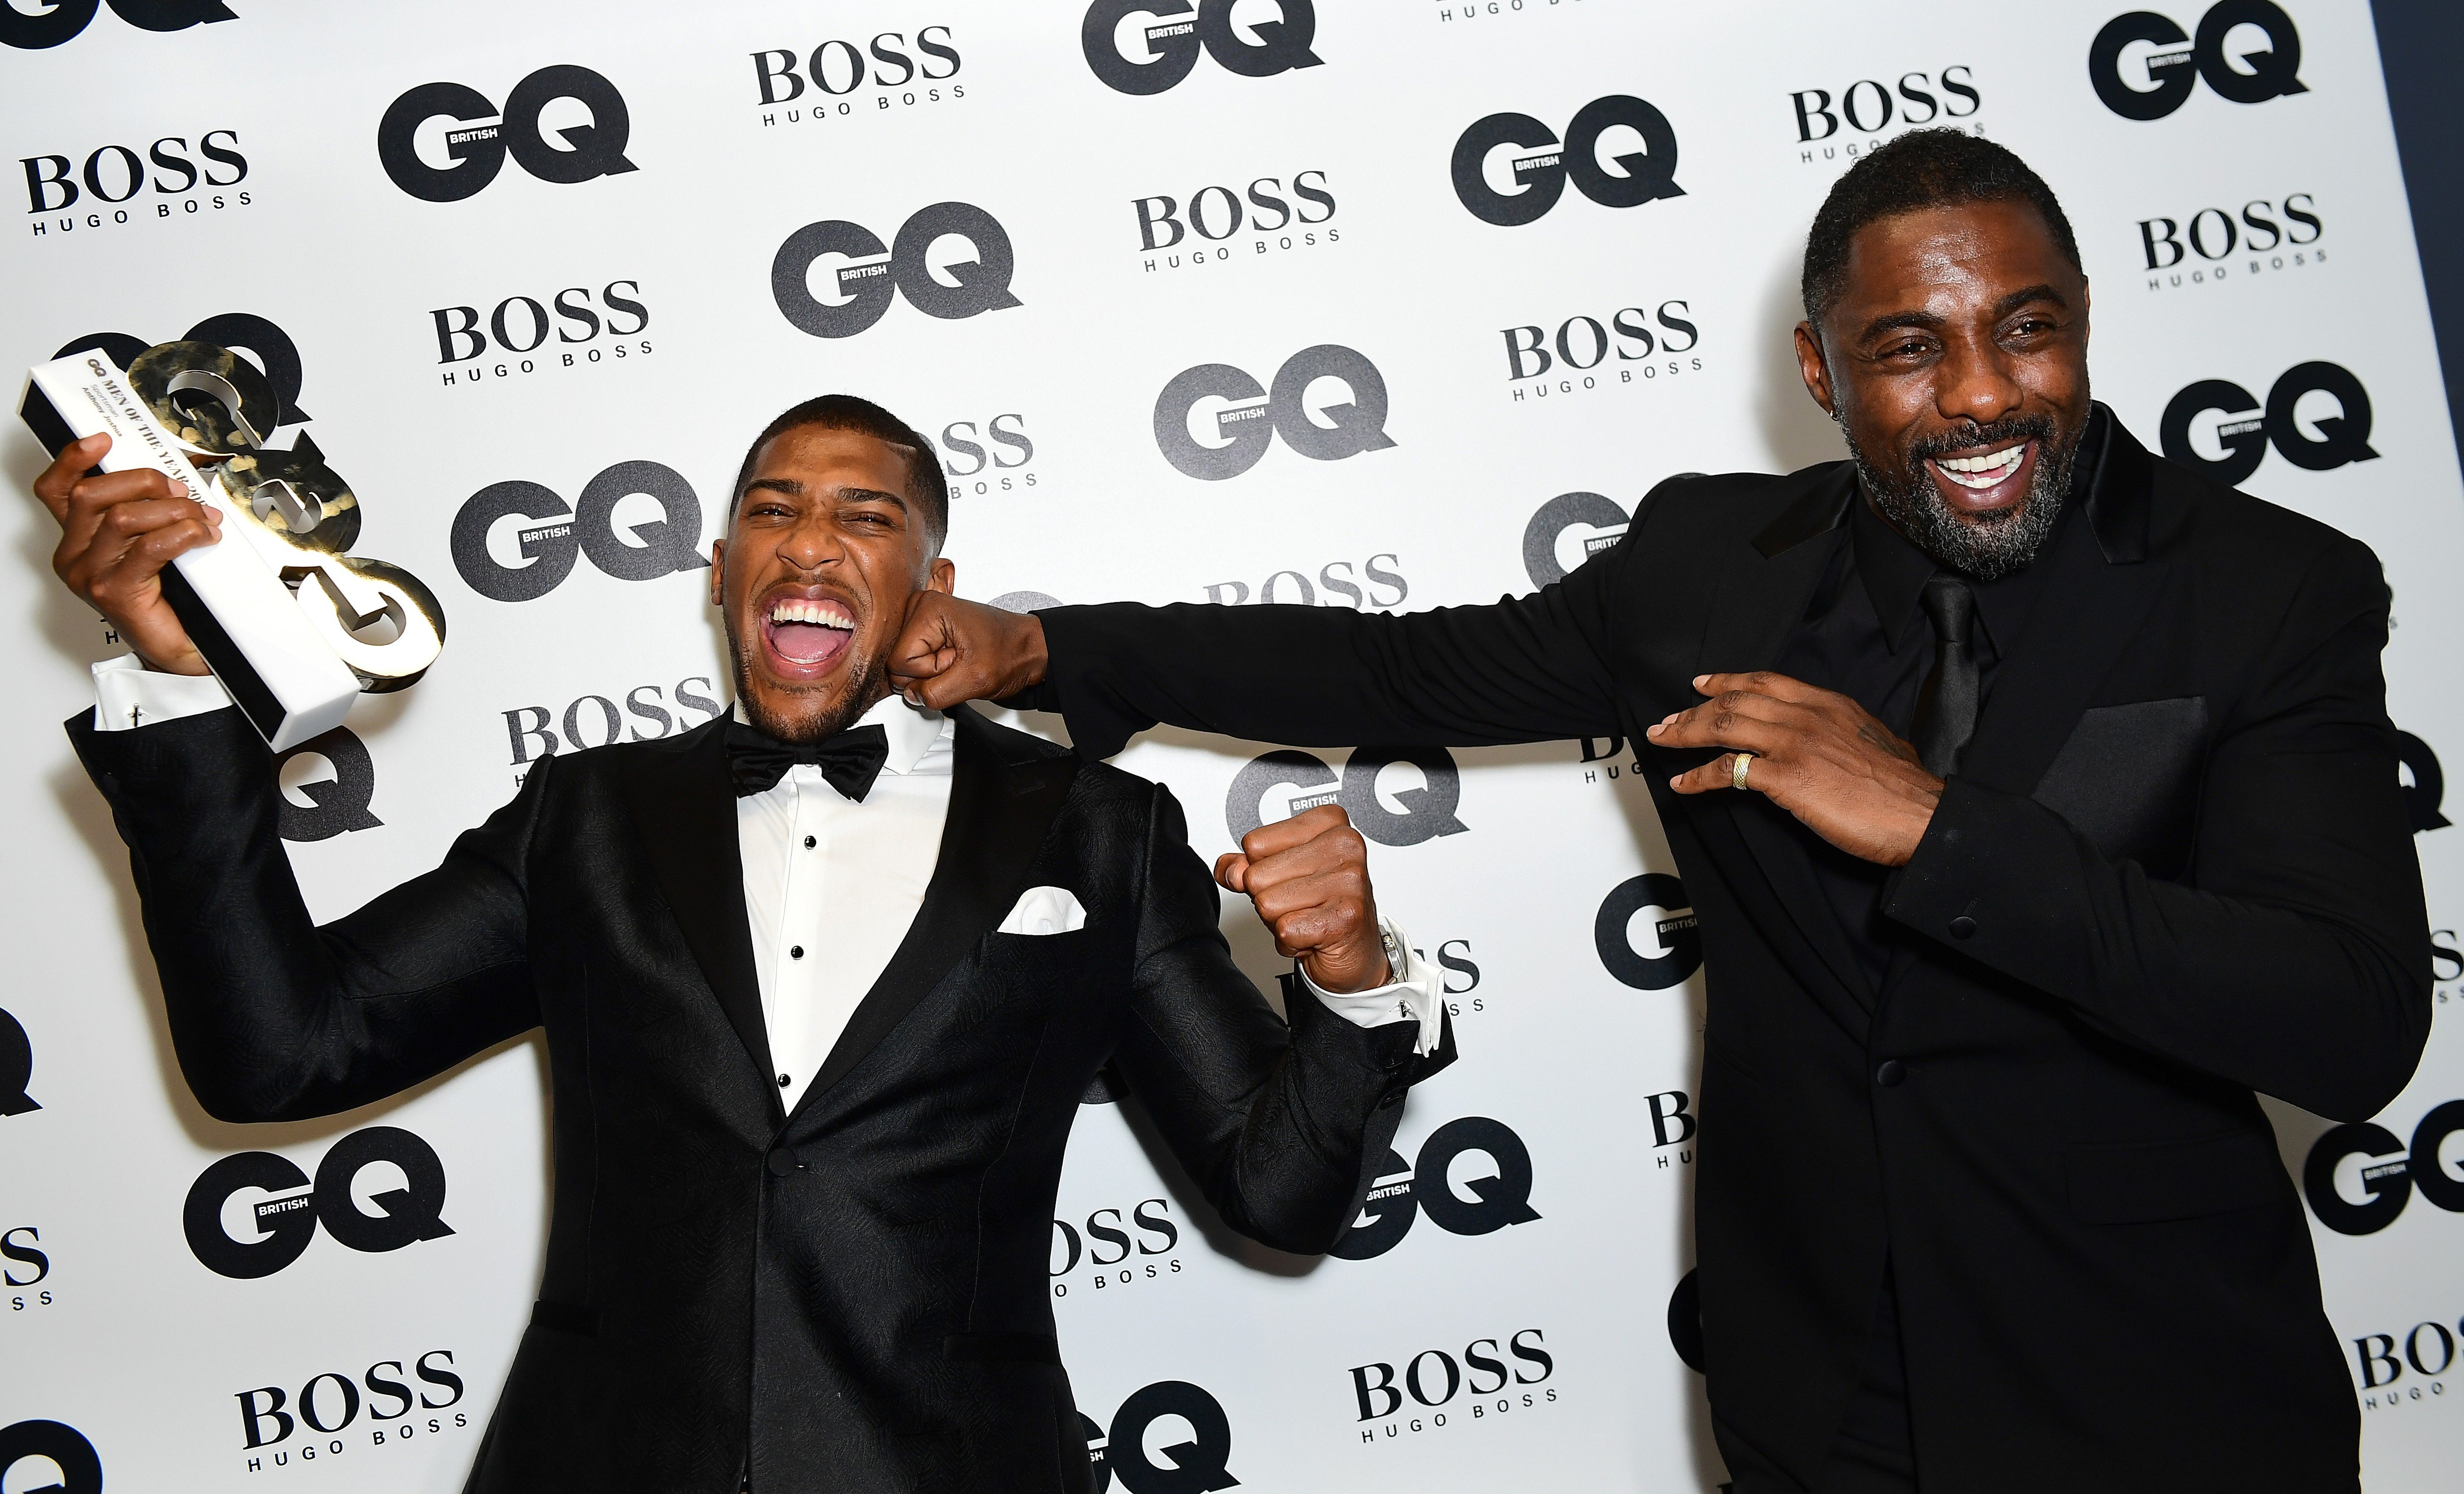 Anthony Joshua (left) with his Best Sportsman award poses with Idris Elba during the GQ Men of the Year Awards 2017 held at the Tate Modern, London., Image: 348437557, License: Rights-managed, Restrictions: , Model Release: no, Credit line: Profimedia, Press Association